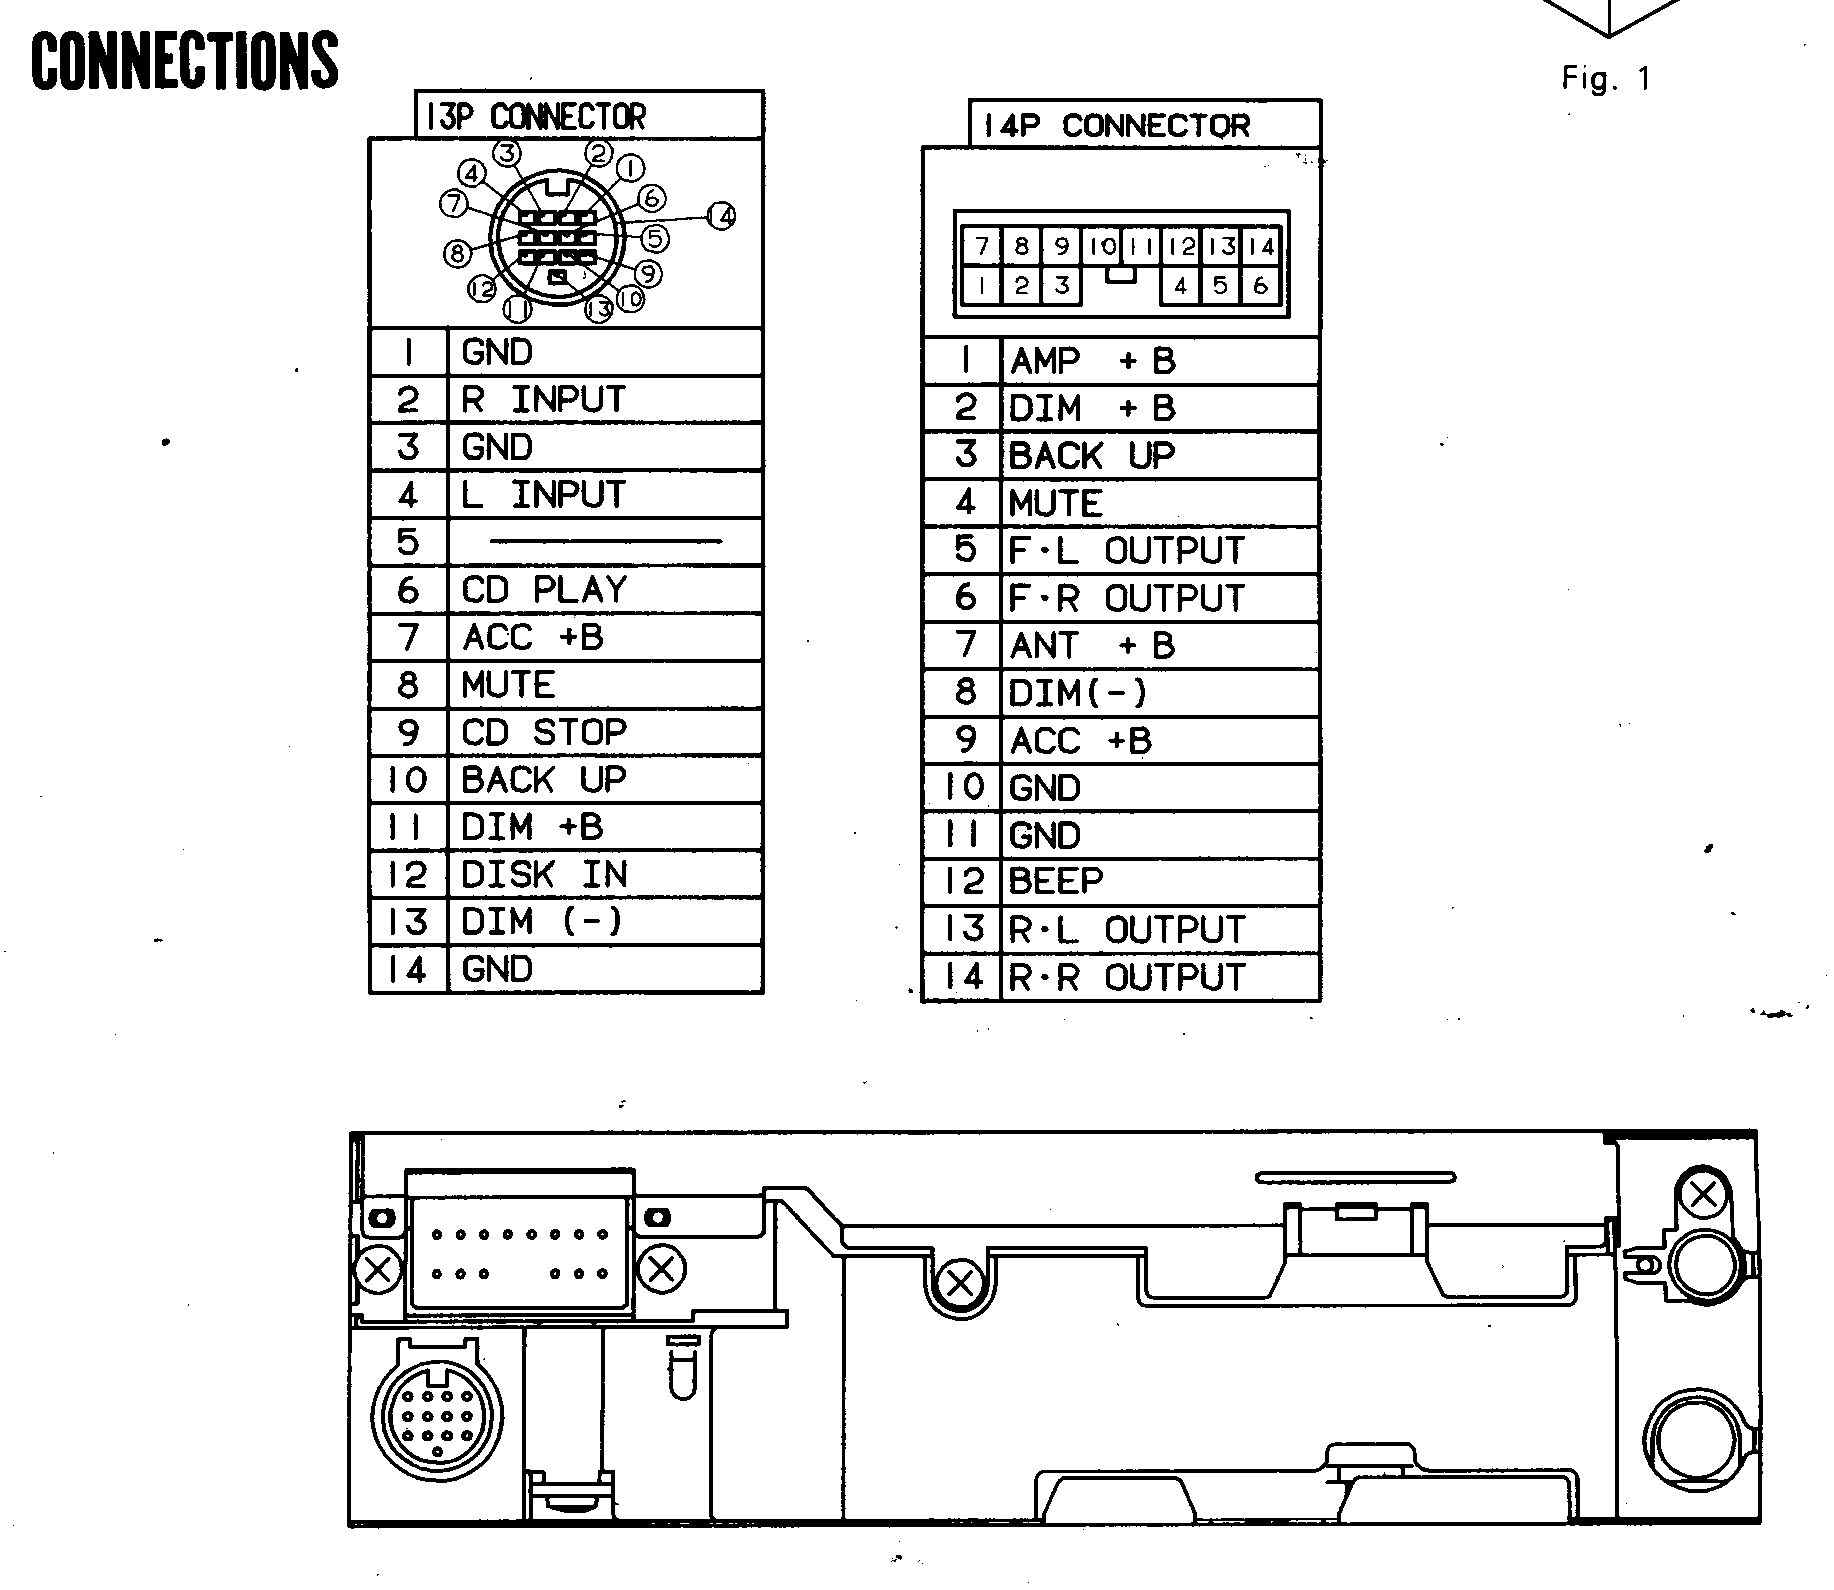 Wiring Diagram For A Panasonic Car Stereo Model Number Cq